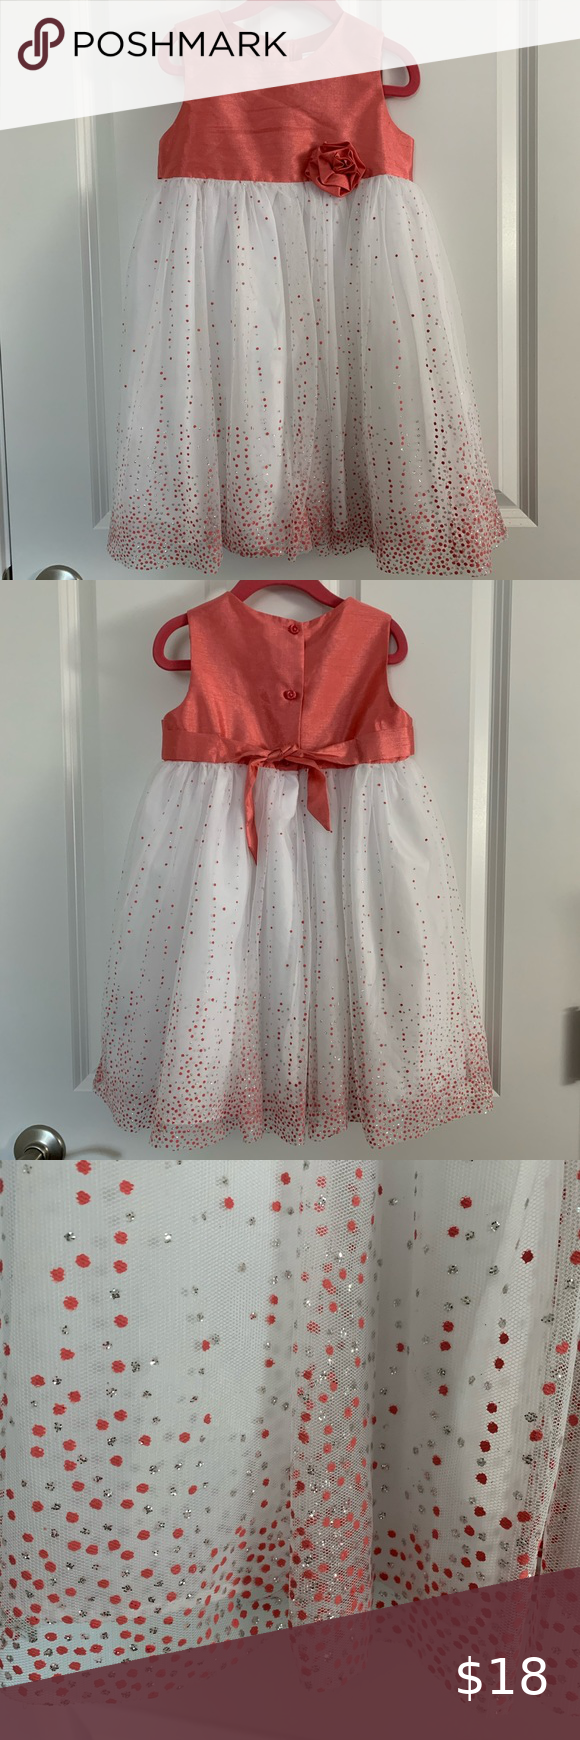 George Coral White Dress 5t Dresses 5t White Dress Party Everyday Dresses [ 1740 x 580 Pixel ]